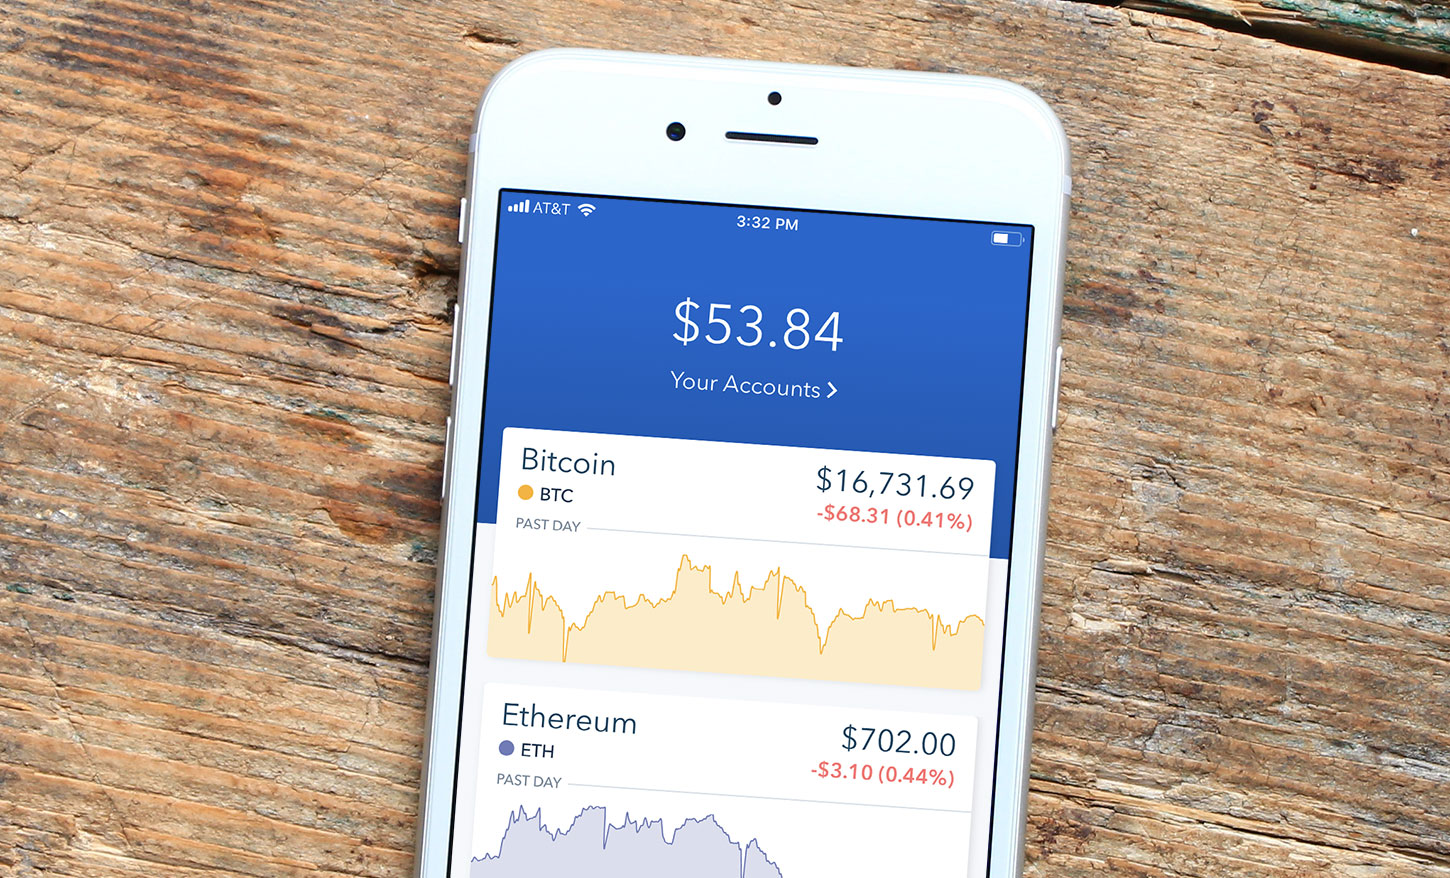 coinbase phone number